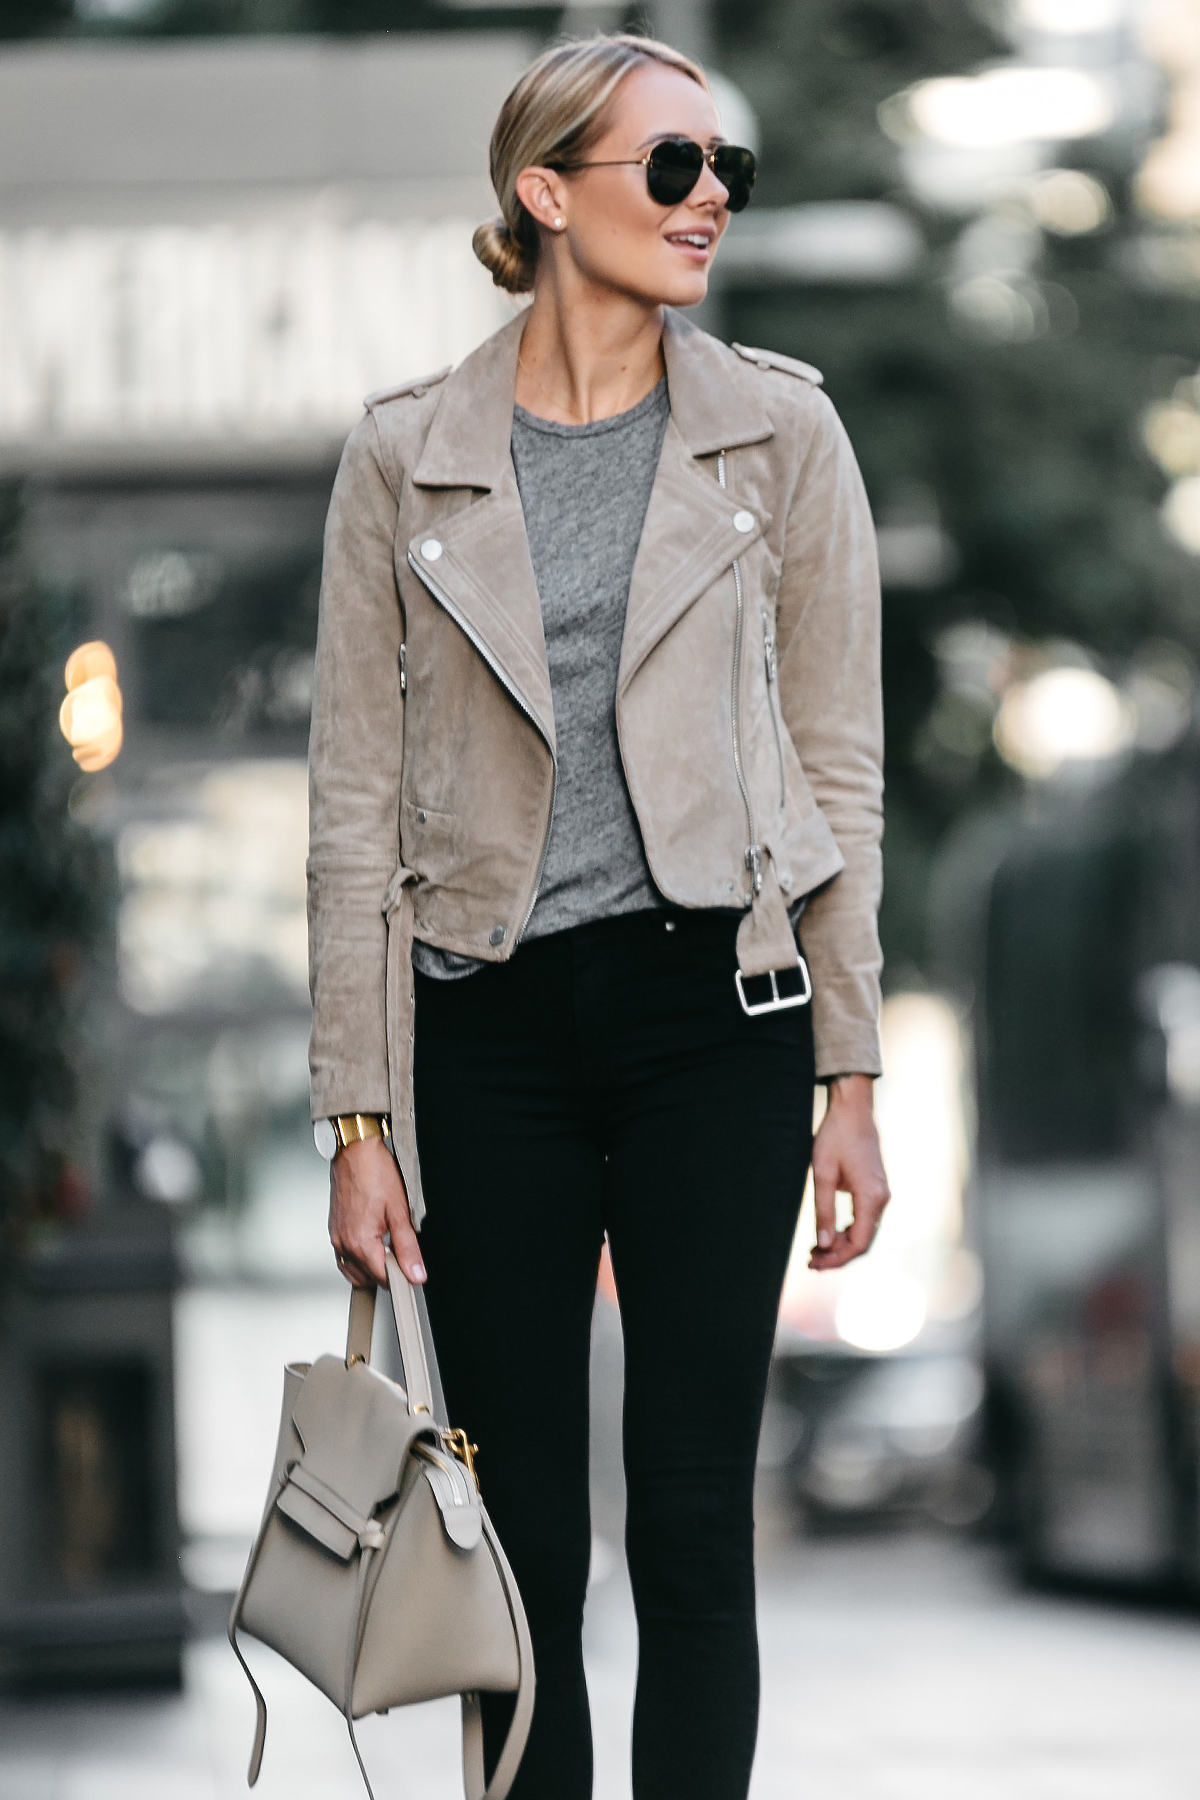 Blonde Woman Wearing Blanknyc Tan Suede Moto Jacket Grey Tshirt Black Skinny Jeans Outfit Celine Belt Bag Fashion Jackson Dallas Blogger Fashion Blogger Street Style